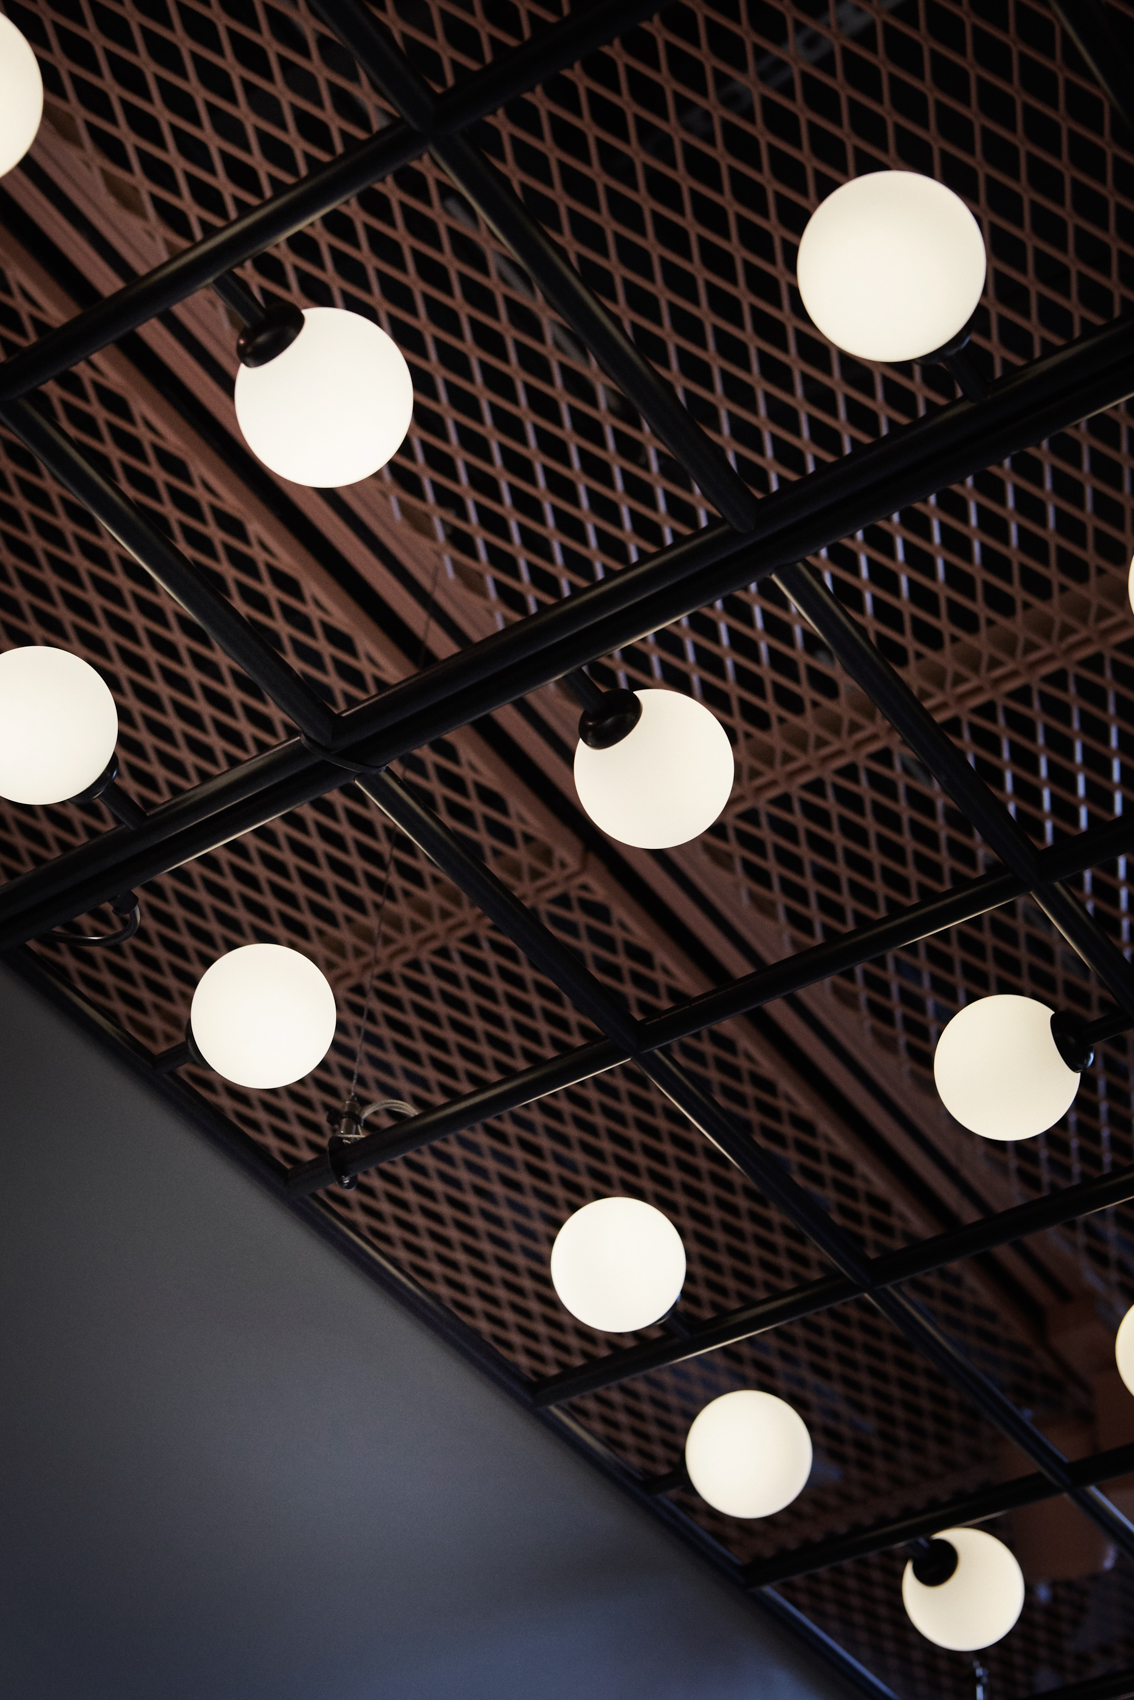 Perforated metal for hotels